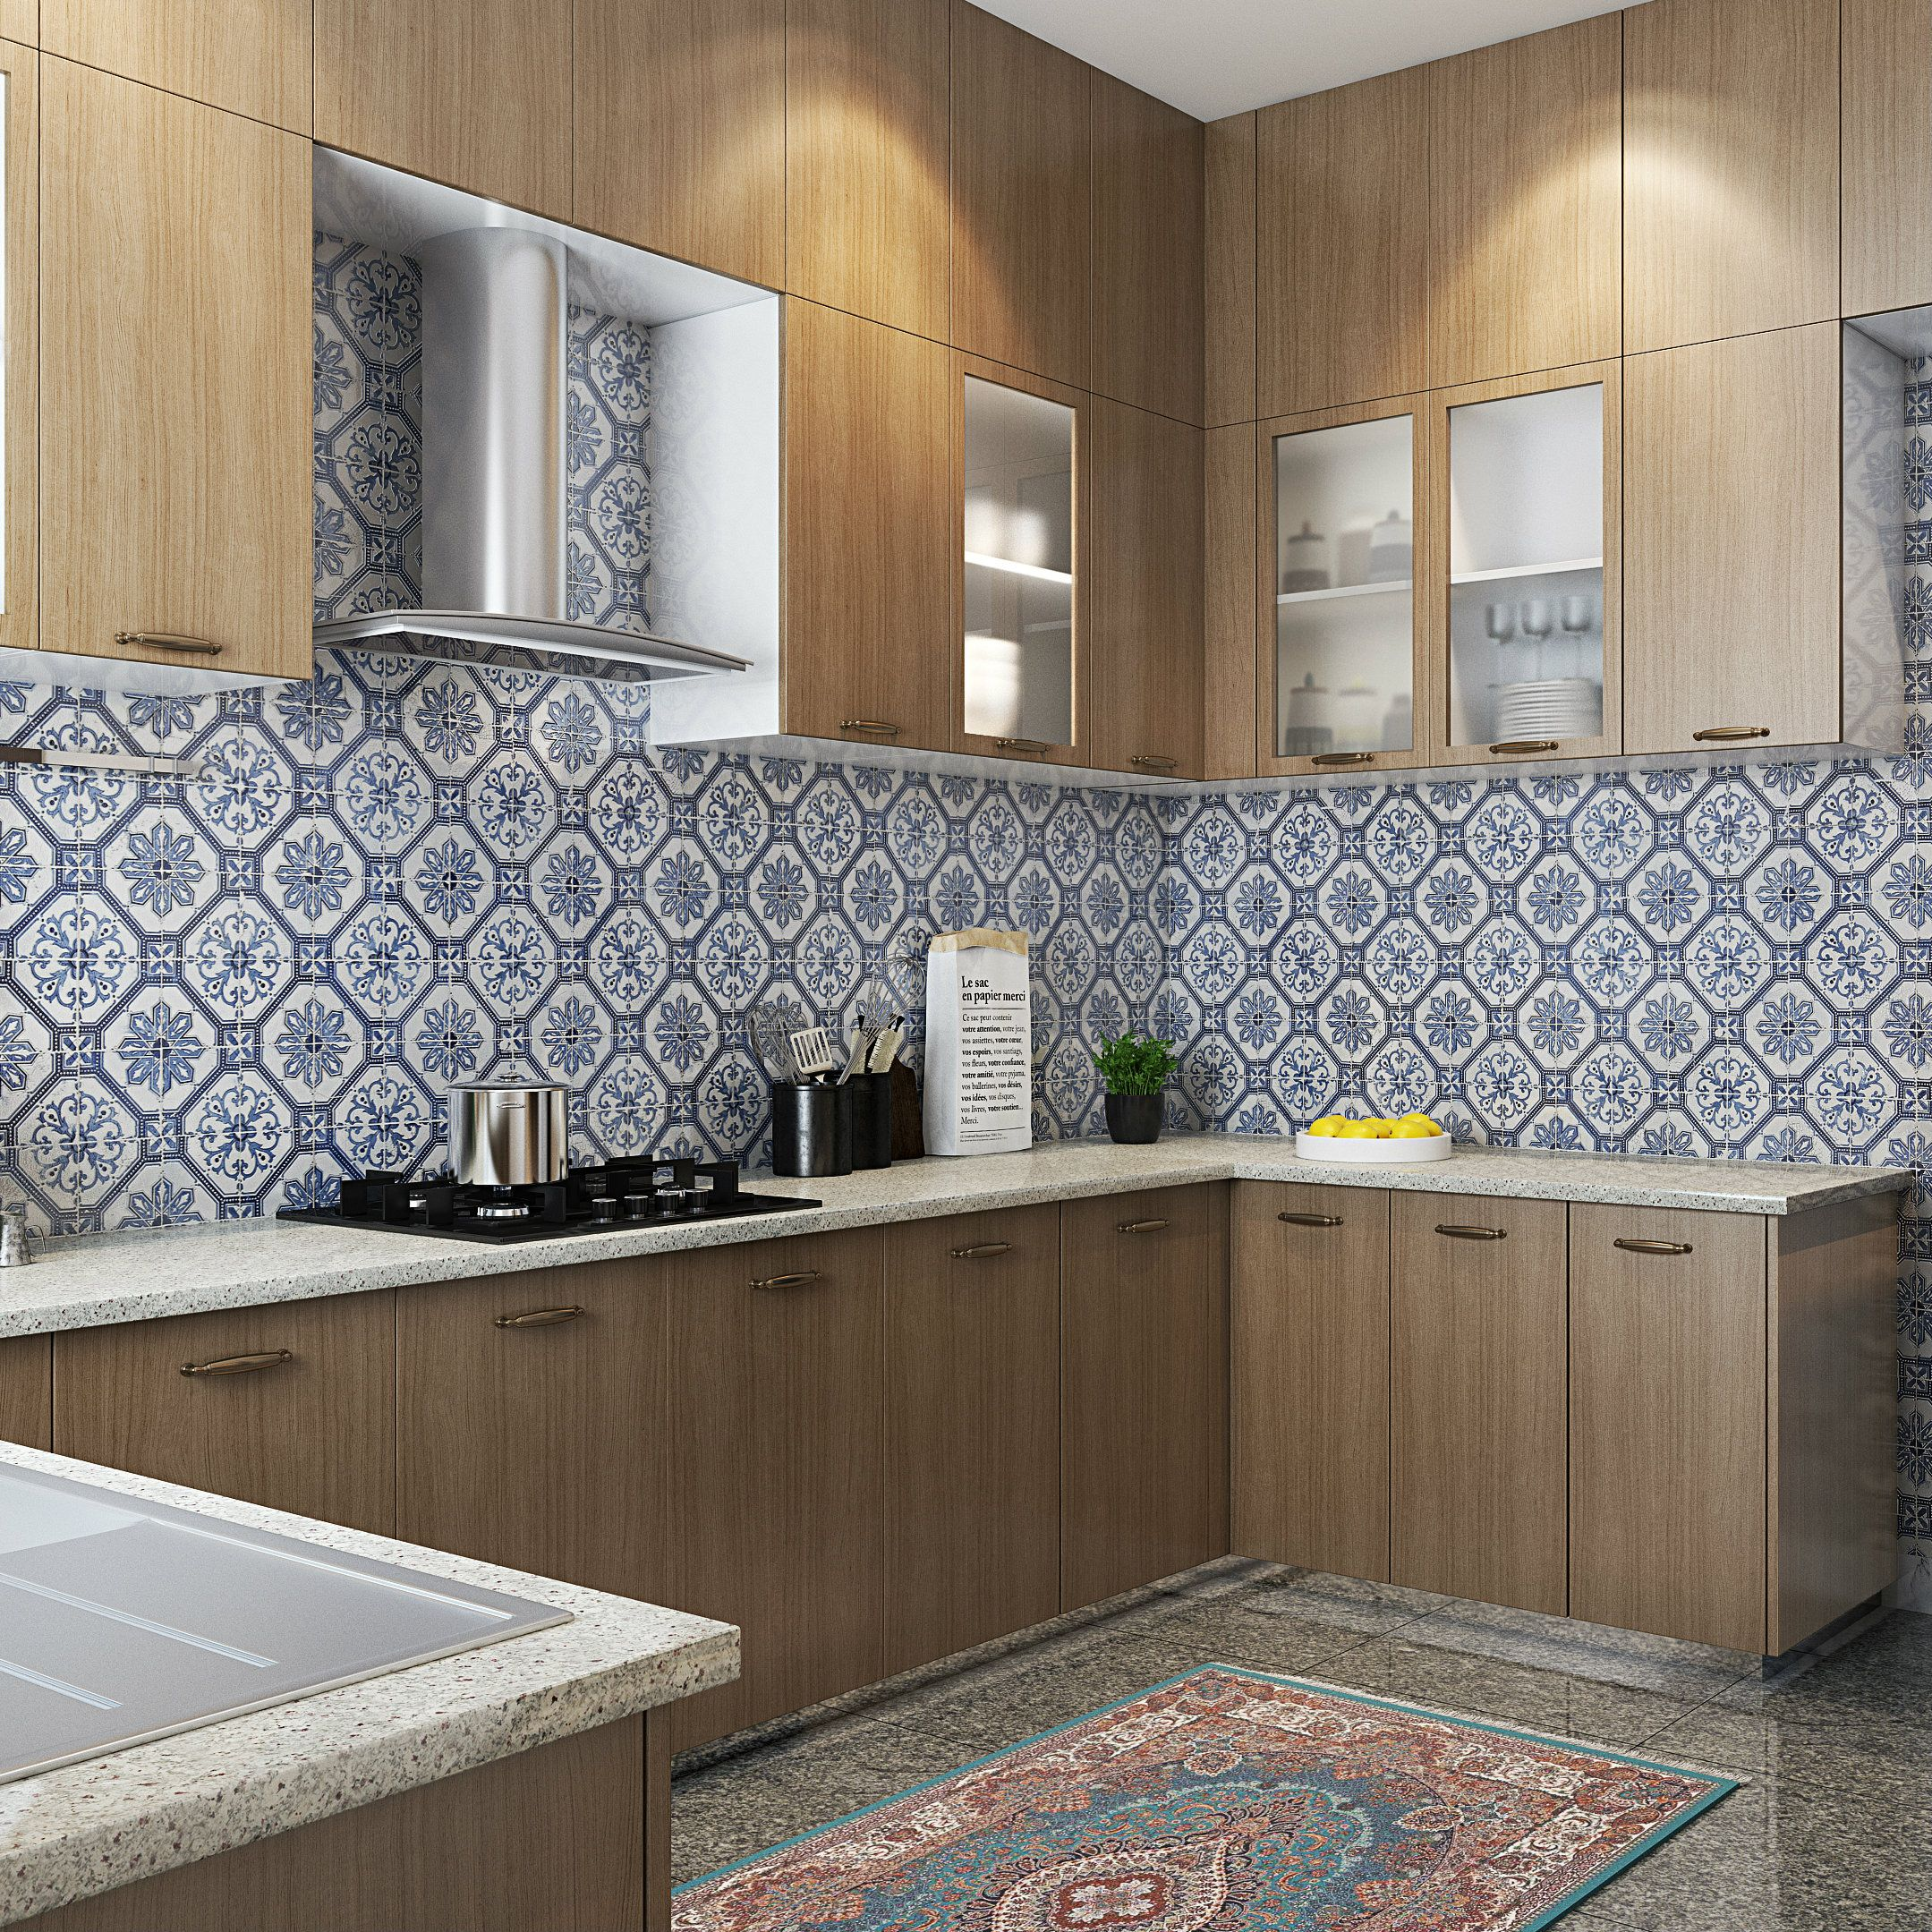 Pin On Modular Kitchens Design